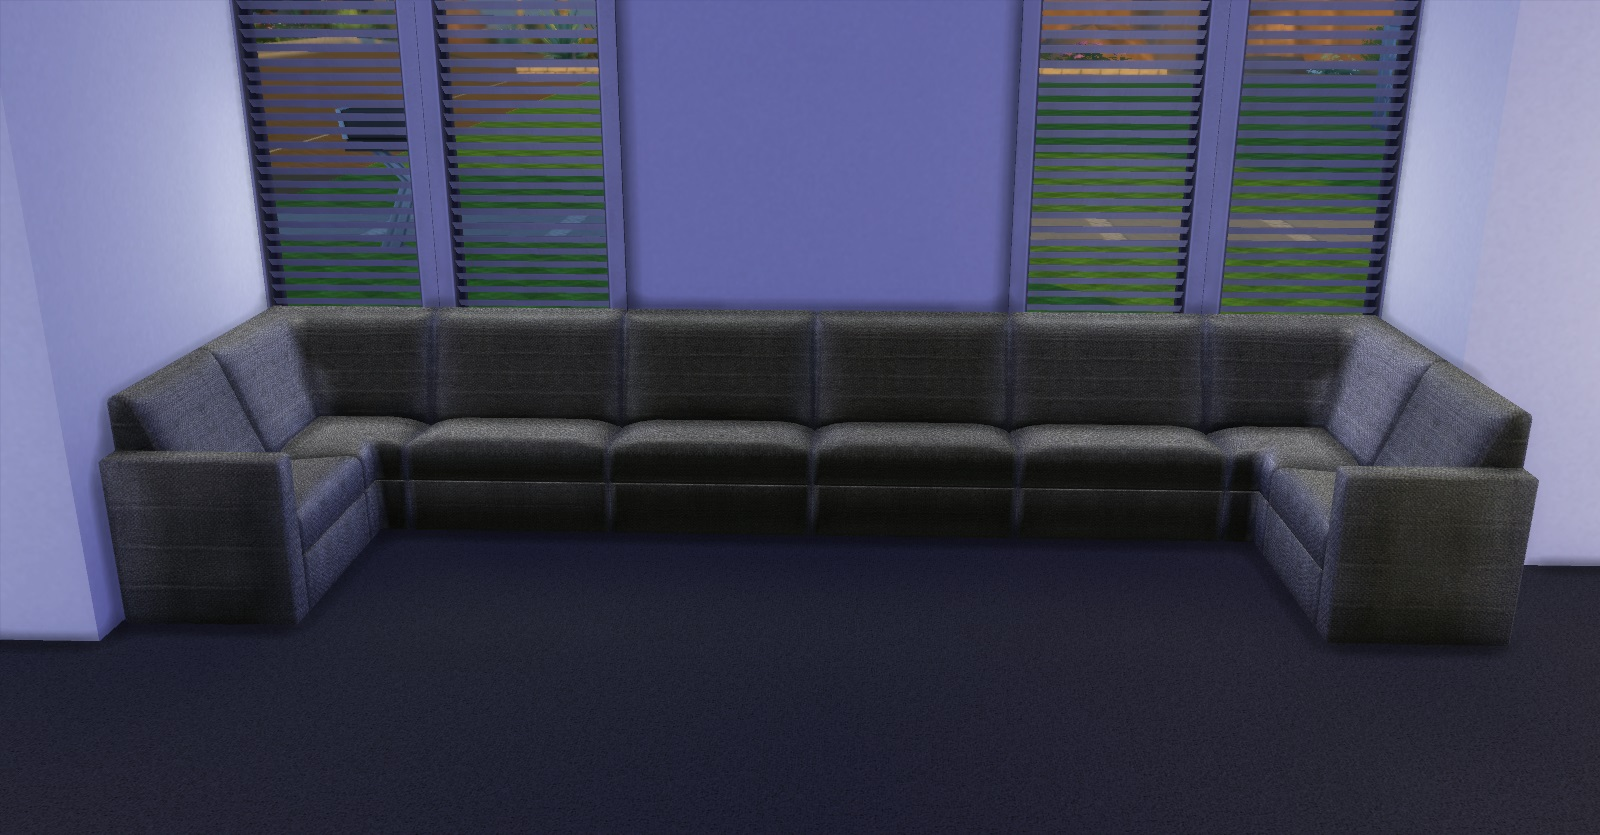 Couches 4 Sims 4 Game Elements That Needs To Be Reworked The Sims Forums